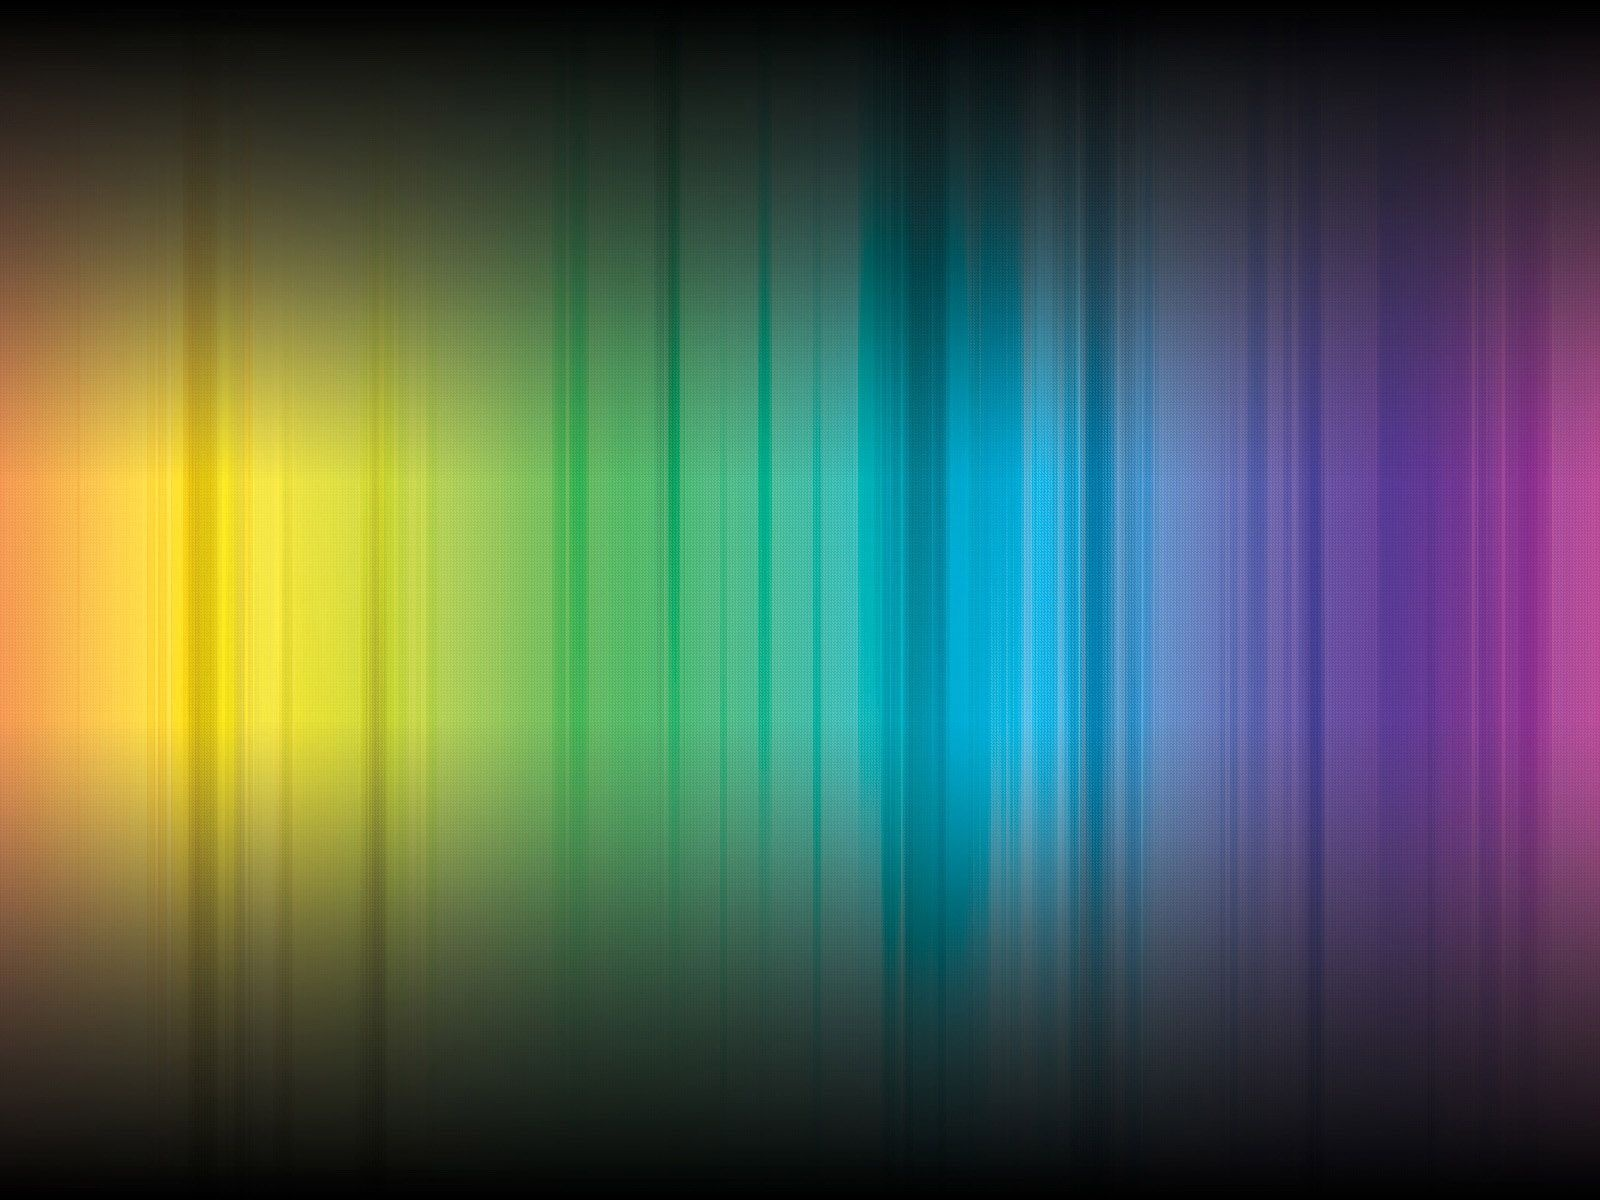 1500x500 Spectrum of Light